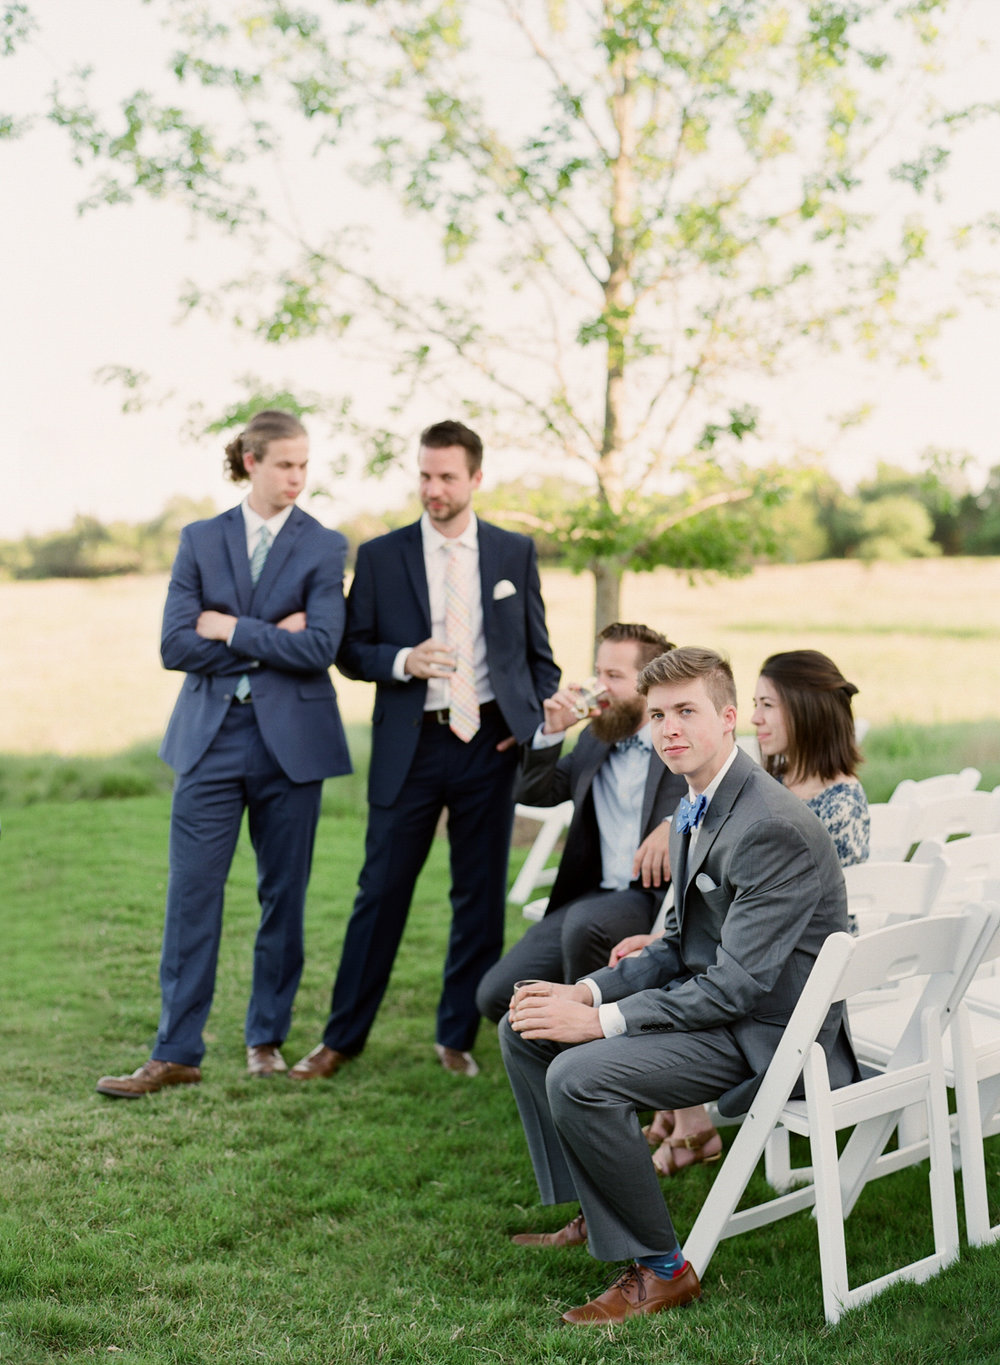 PROSPECT_HOUSE_WEDDING_AUSTIN_TX_BY_MATTHEW_MOORE_PHOTOGRAPHY_00472.jpg